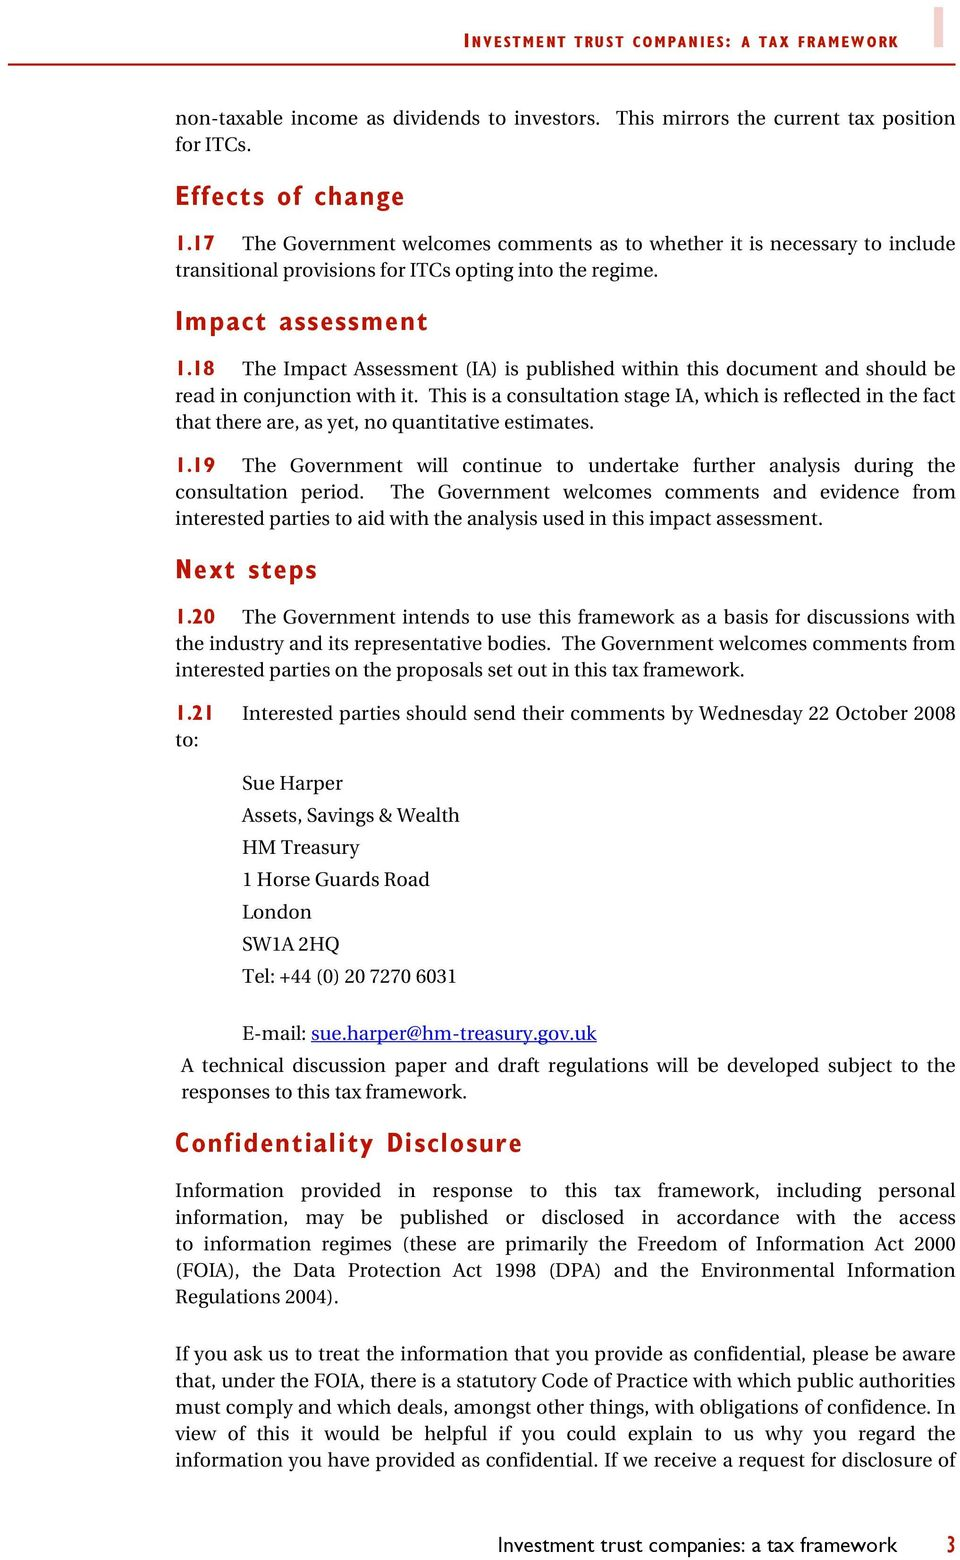 18 The Impact Assessment (IA) is published within this document and should be read in conjunction with it.